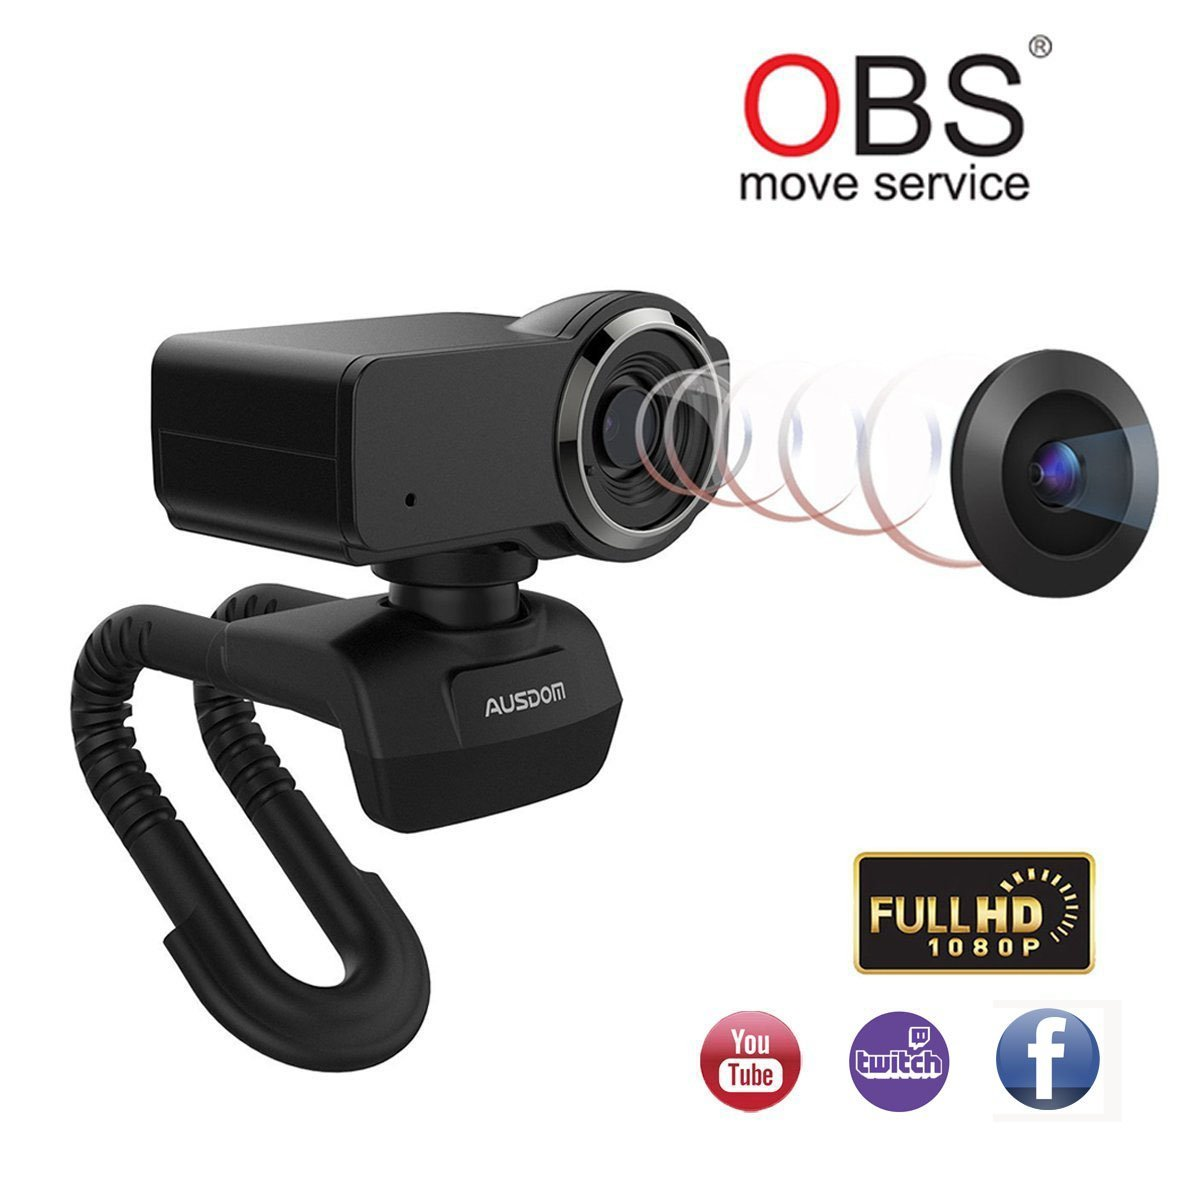 Ausdom Streamed Webcam Full HD 1080P OBS Live Streaming Web Camera Xbox Skype Twitch YouTube Microphone Video Calling Recording Computer Laptop Desktop Plug Play Web Cam